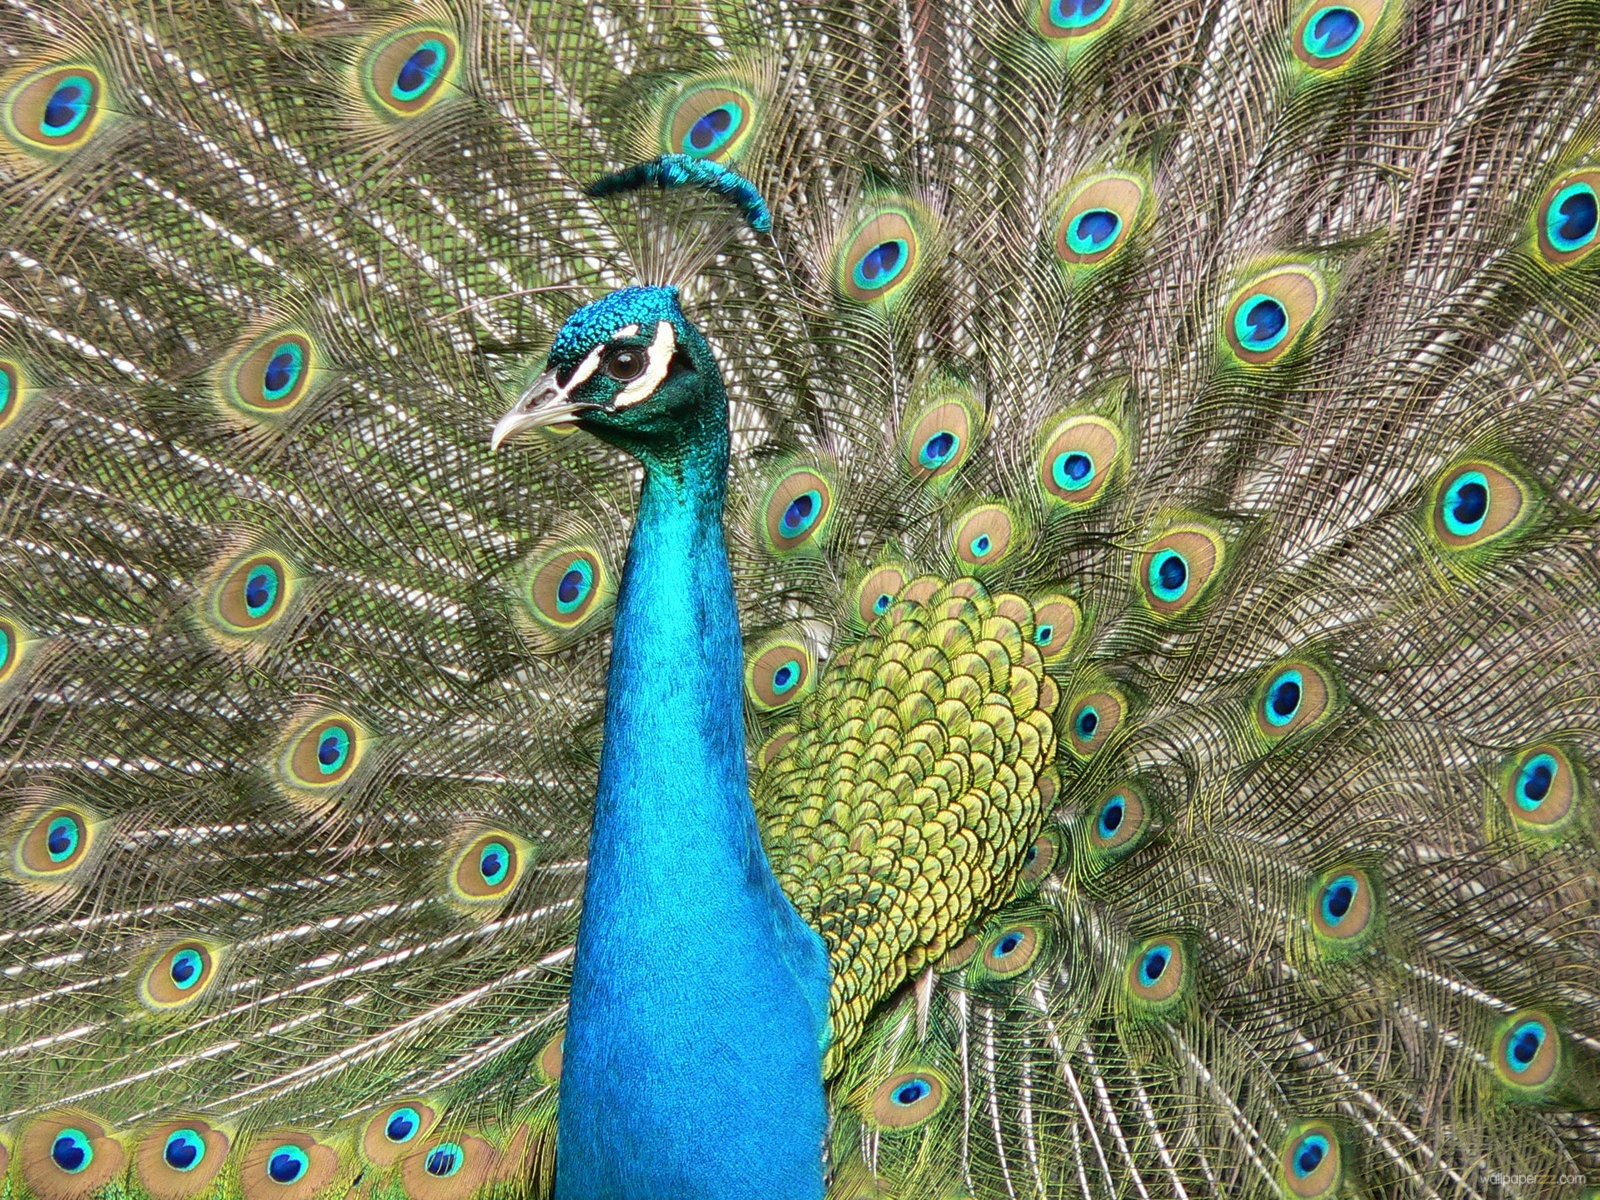 Beautiful Peacock Wallpapers Free Download